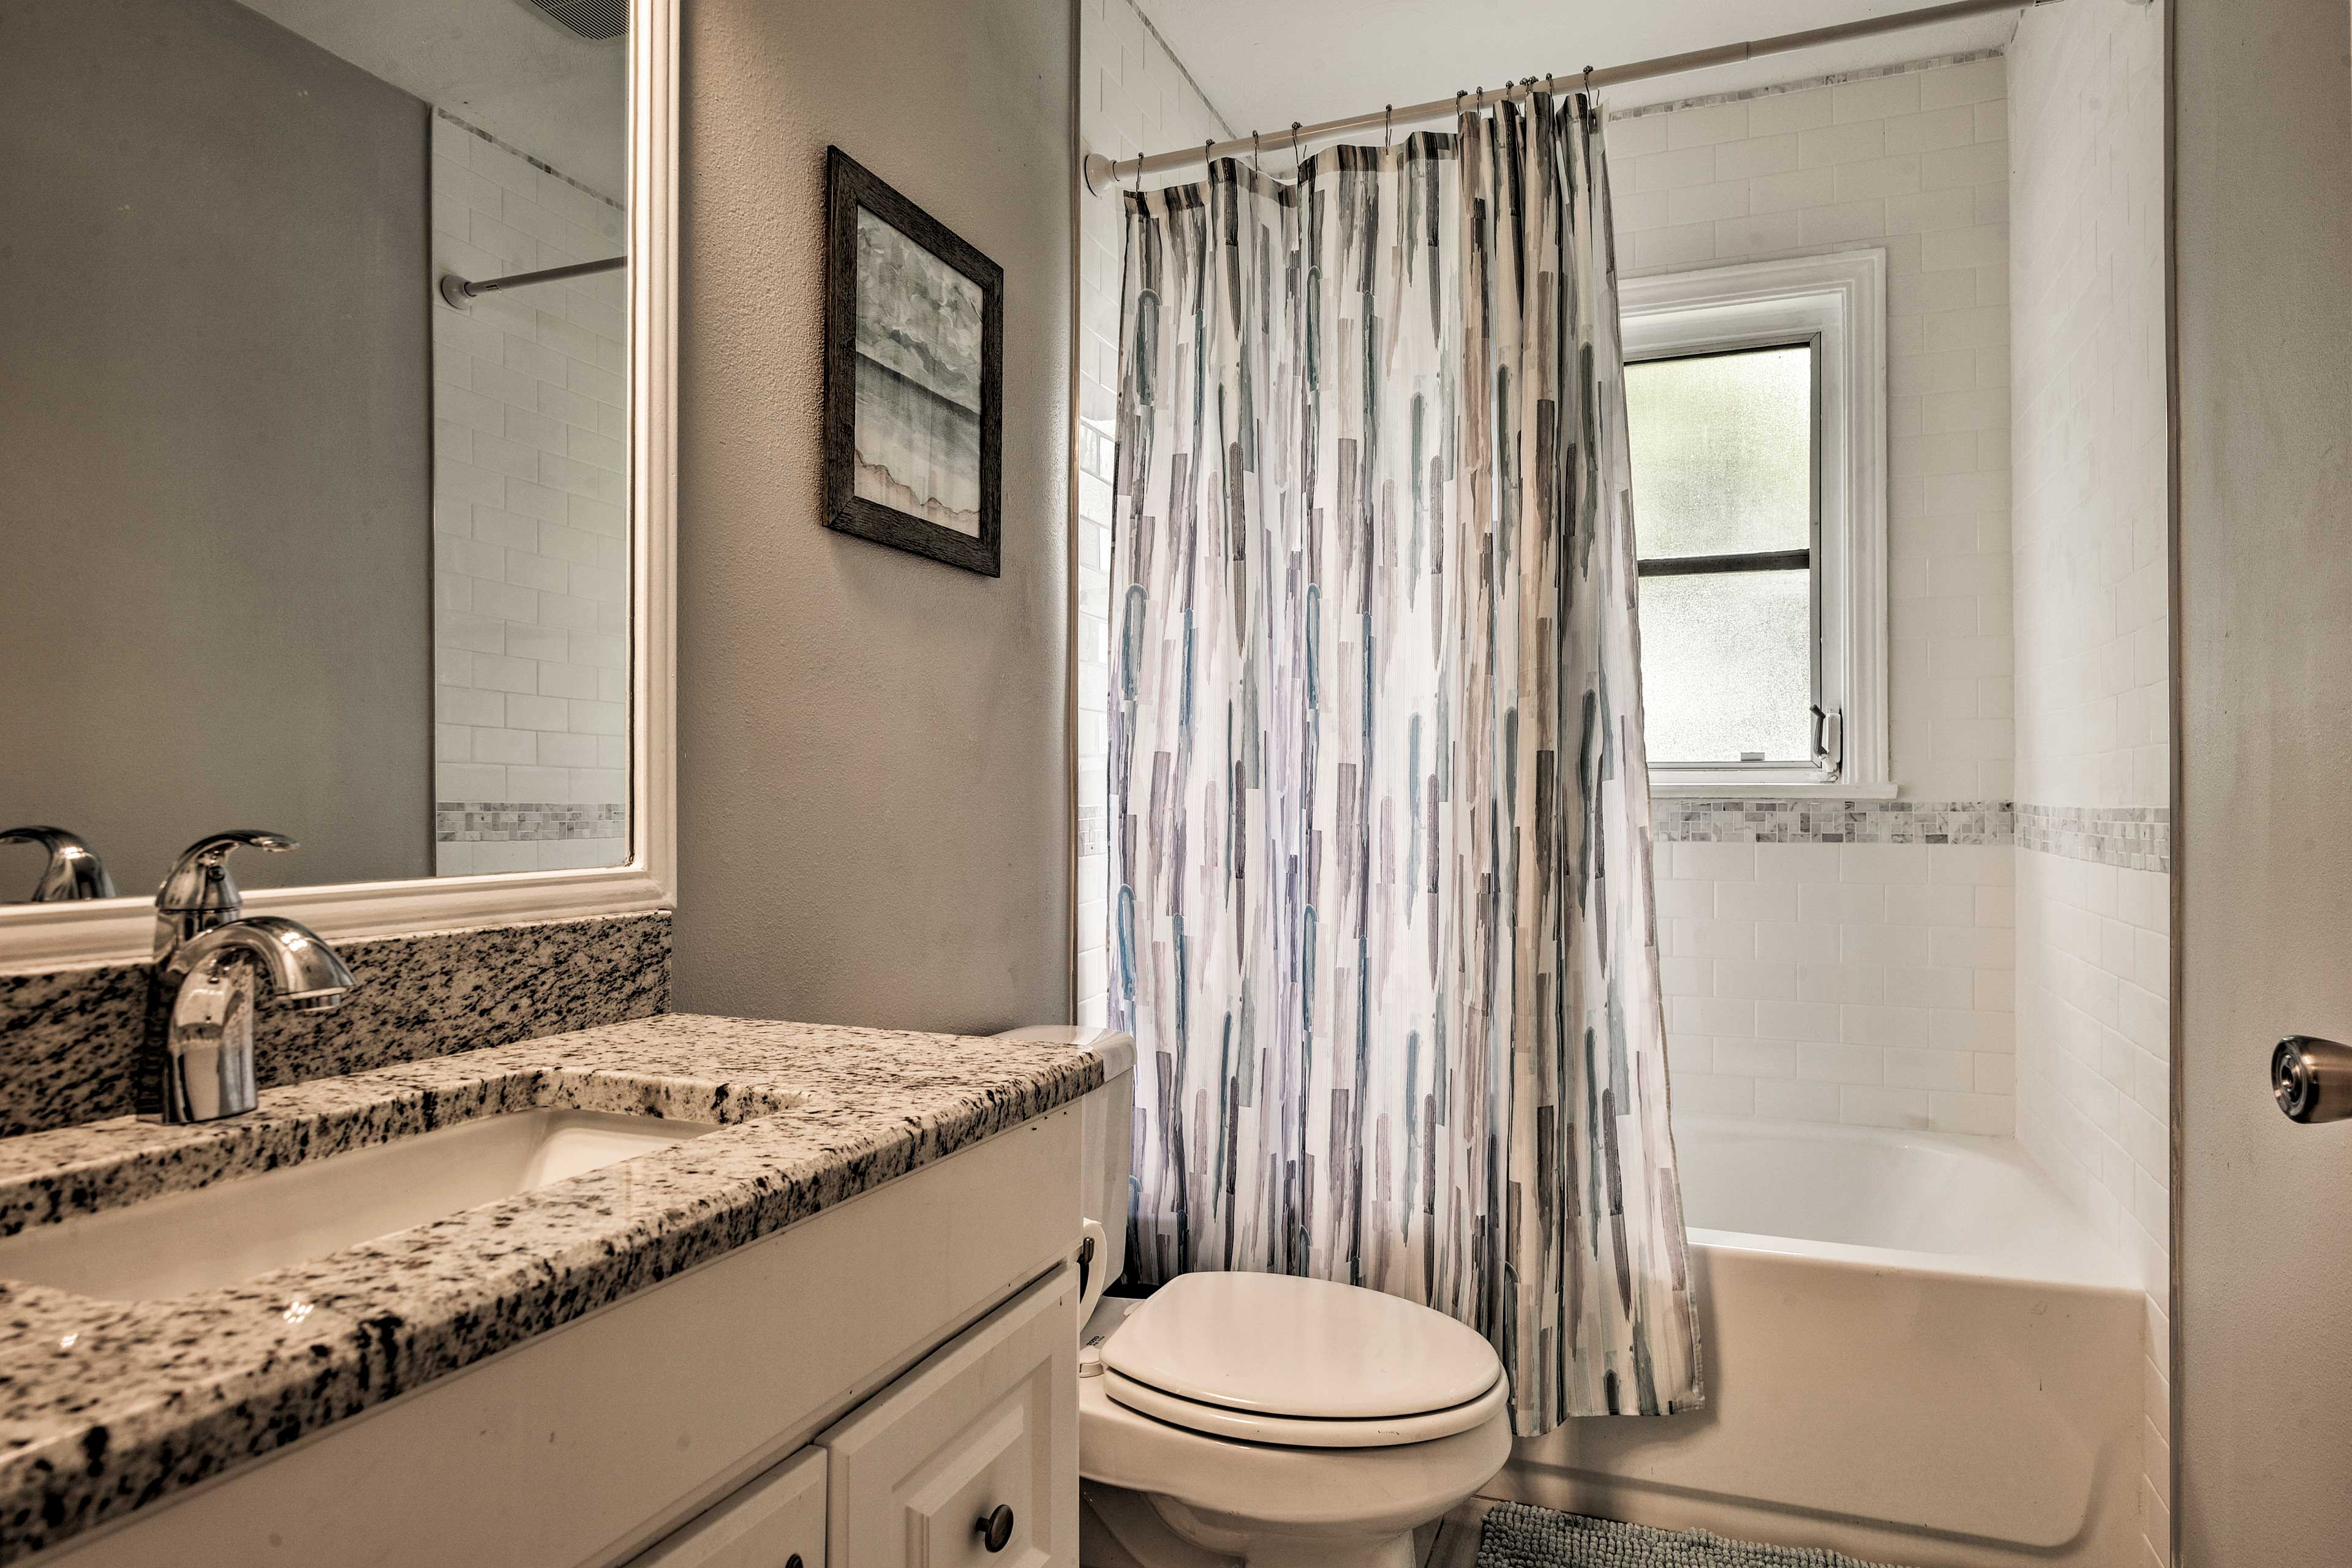 Step into the full bathroom to rinse off after a long day.